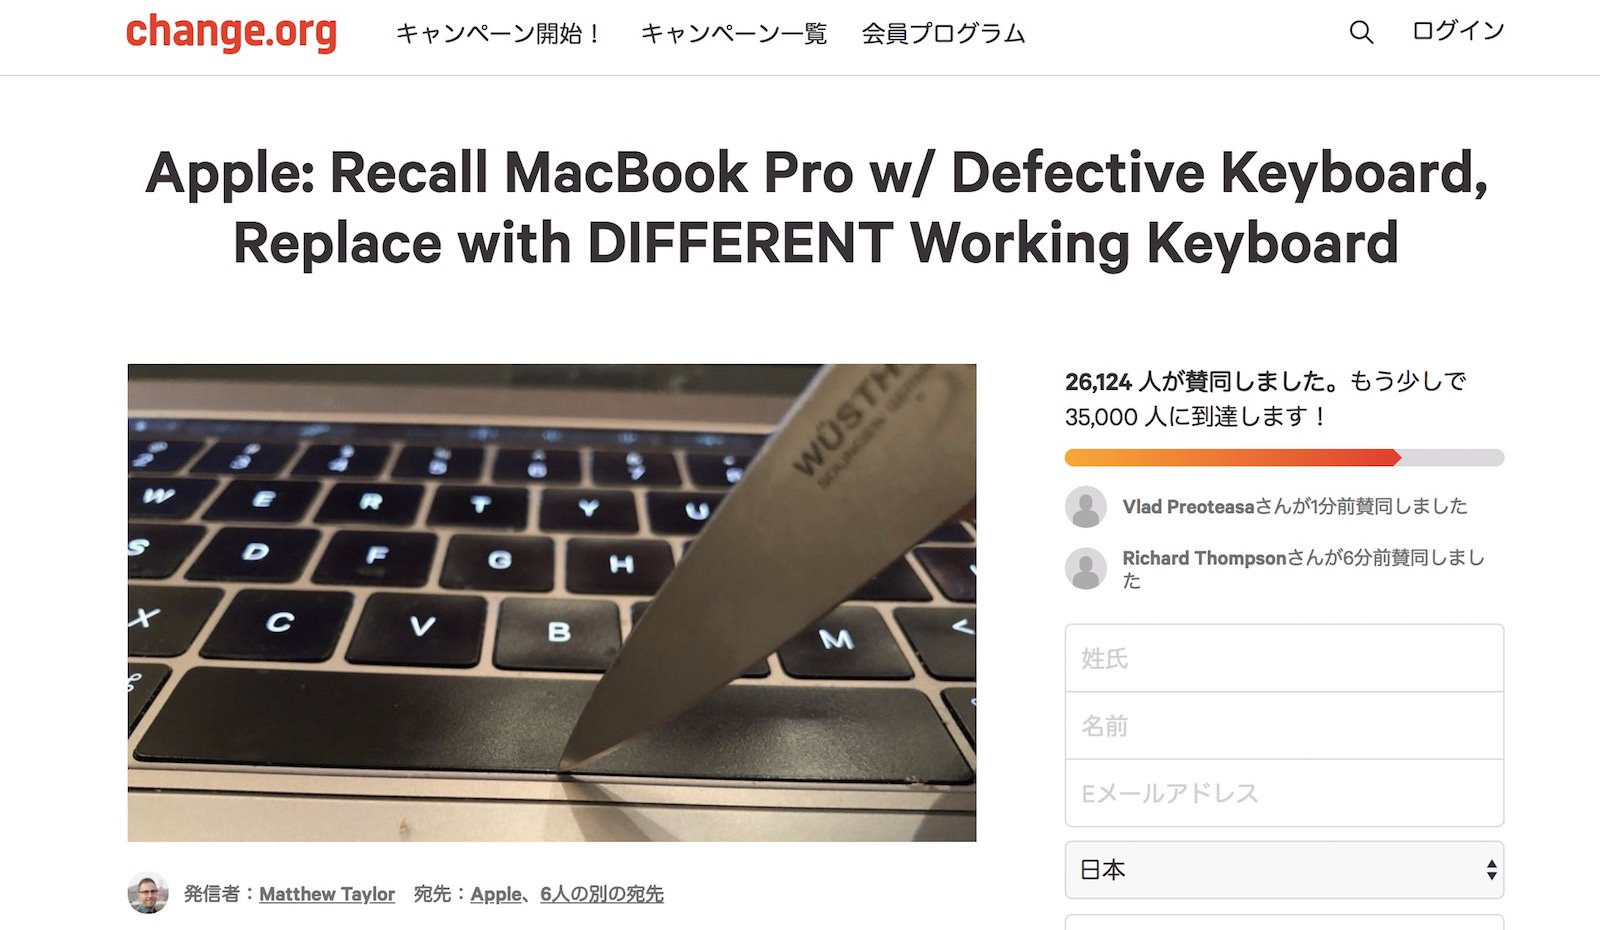 MacBook-Pro-Keyboard-Petition-ChangeOrg.jpg